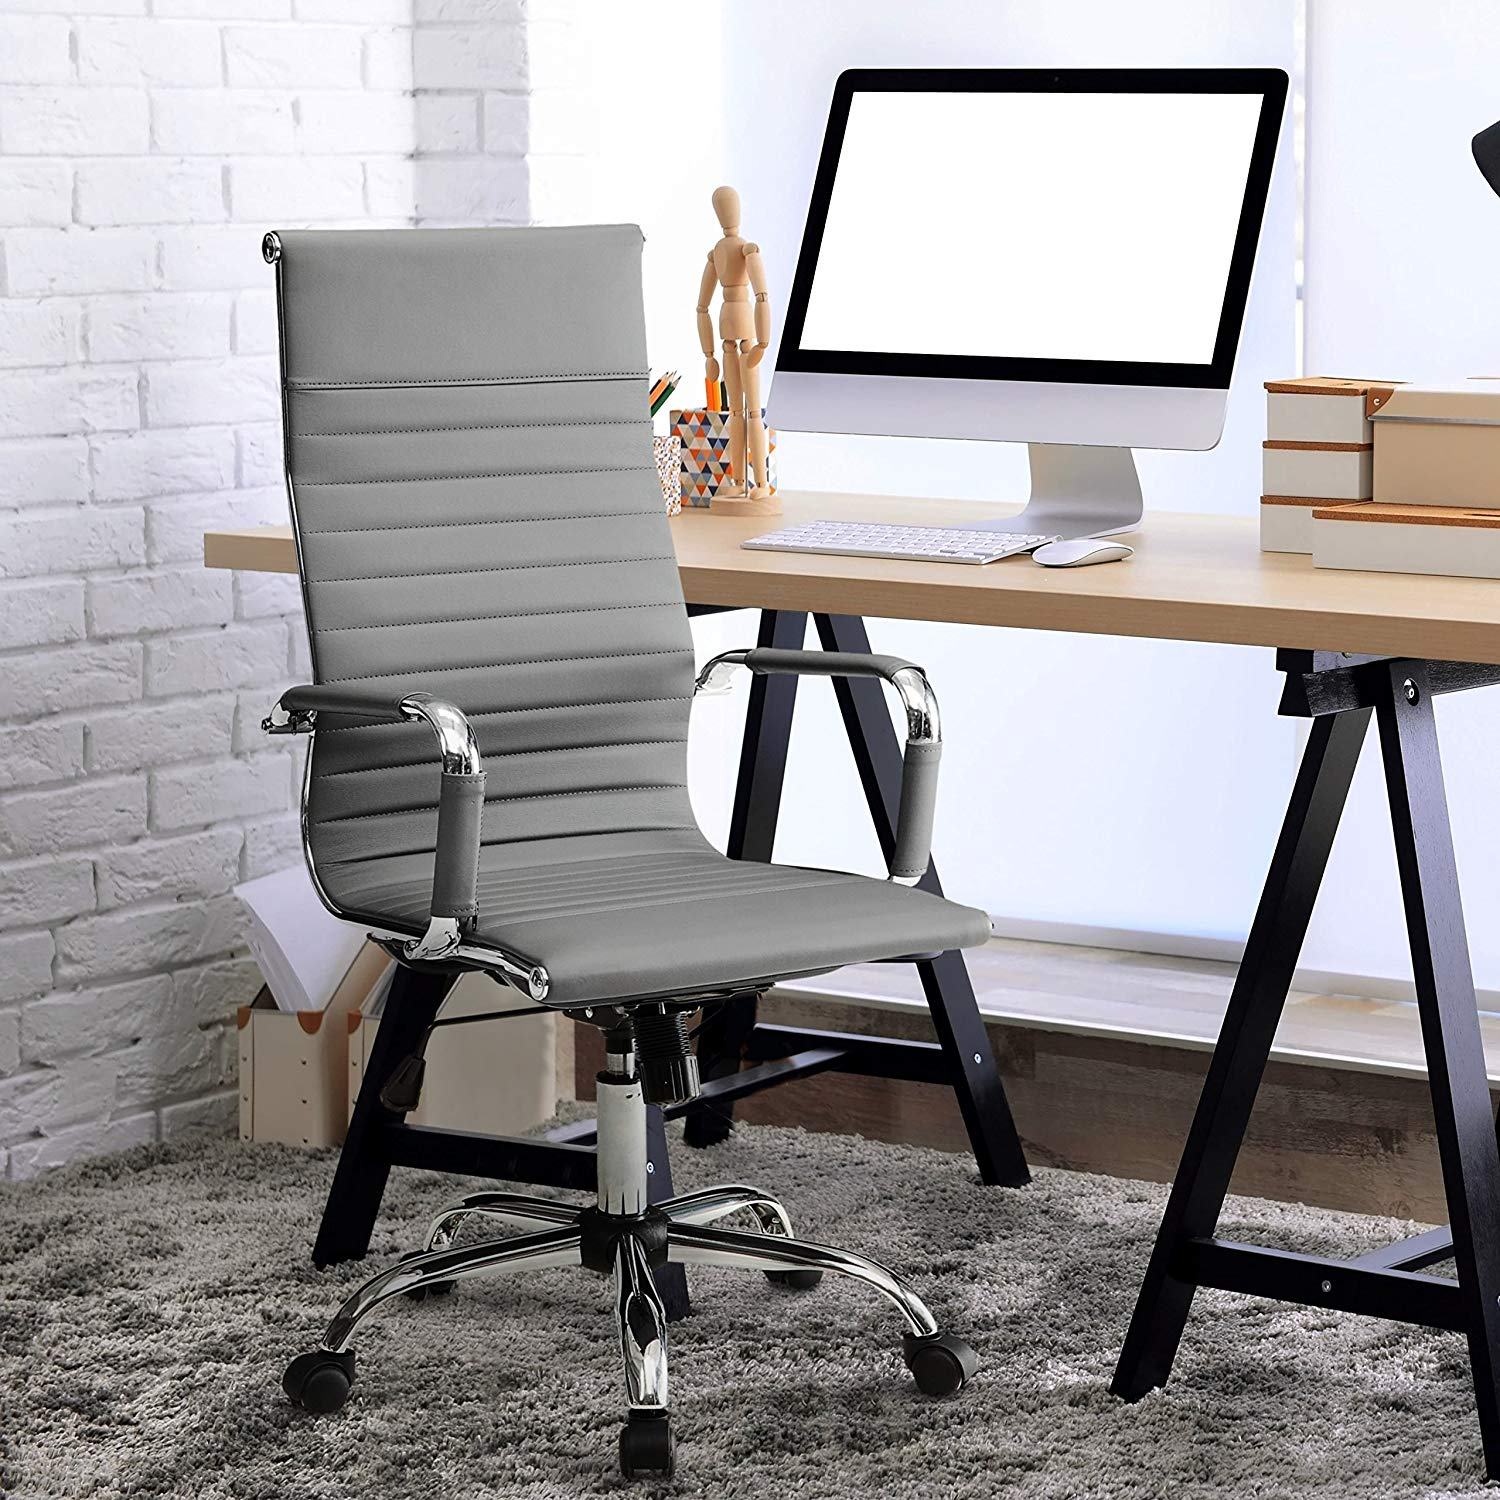 Sophisticated Sardar Ribbed Office Chair, Comfortable High-Back Design, Sleek Faux Leather Upholstery, Contoured Back and Padded Arm Rests, Pneumatic Gas Lift, Smooth Caster Wheels, Multiple Finishes